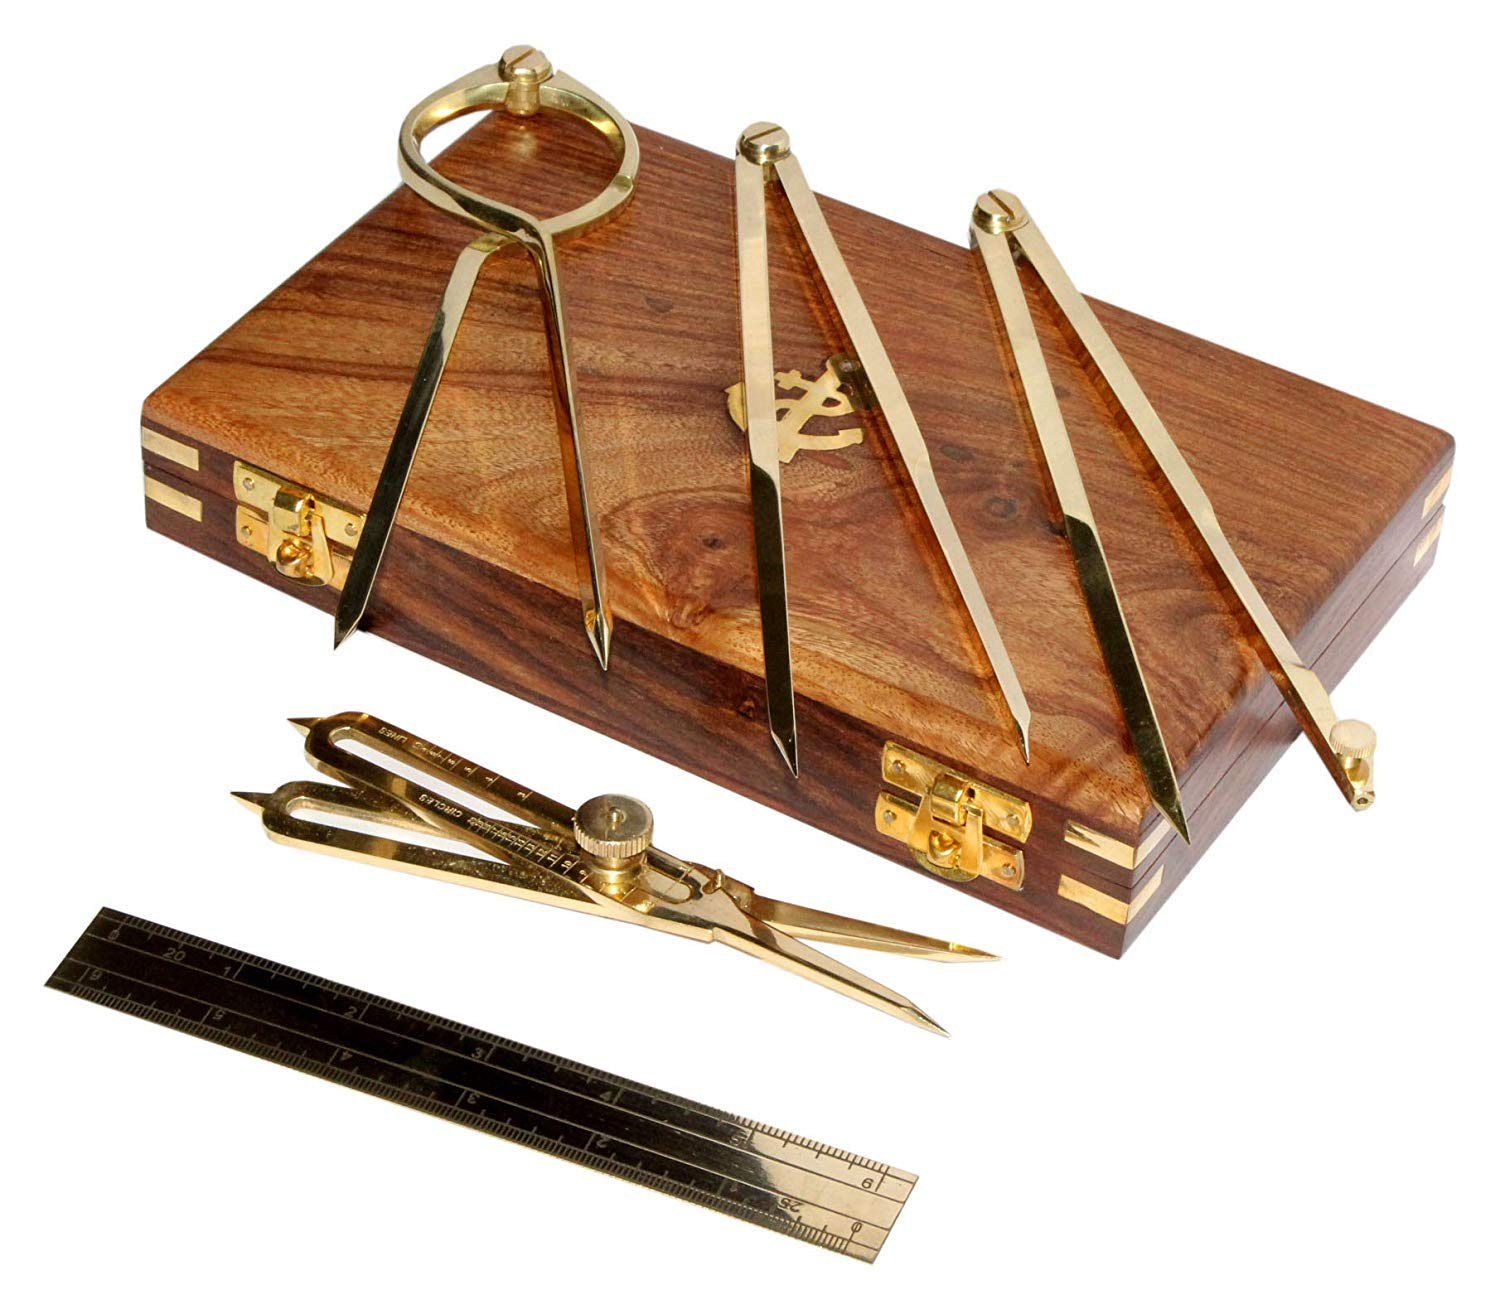 Decor HUnt British Single Handed 8'' Brass Navigational Dividers, Compass Set for Maritime, Naval, Geometry and Drafting by Decor Hunt